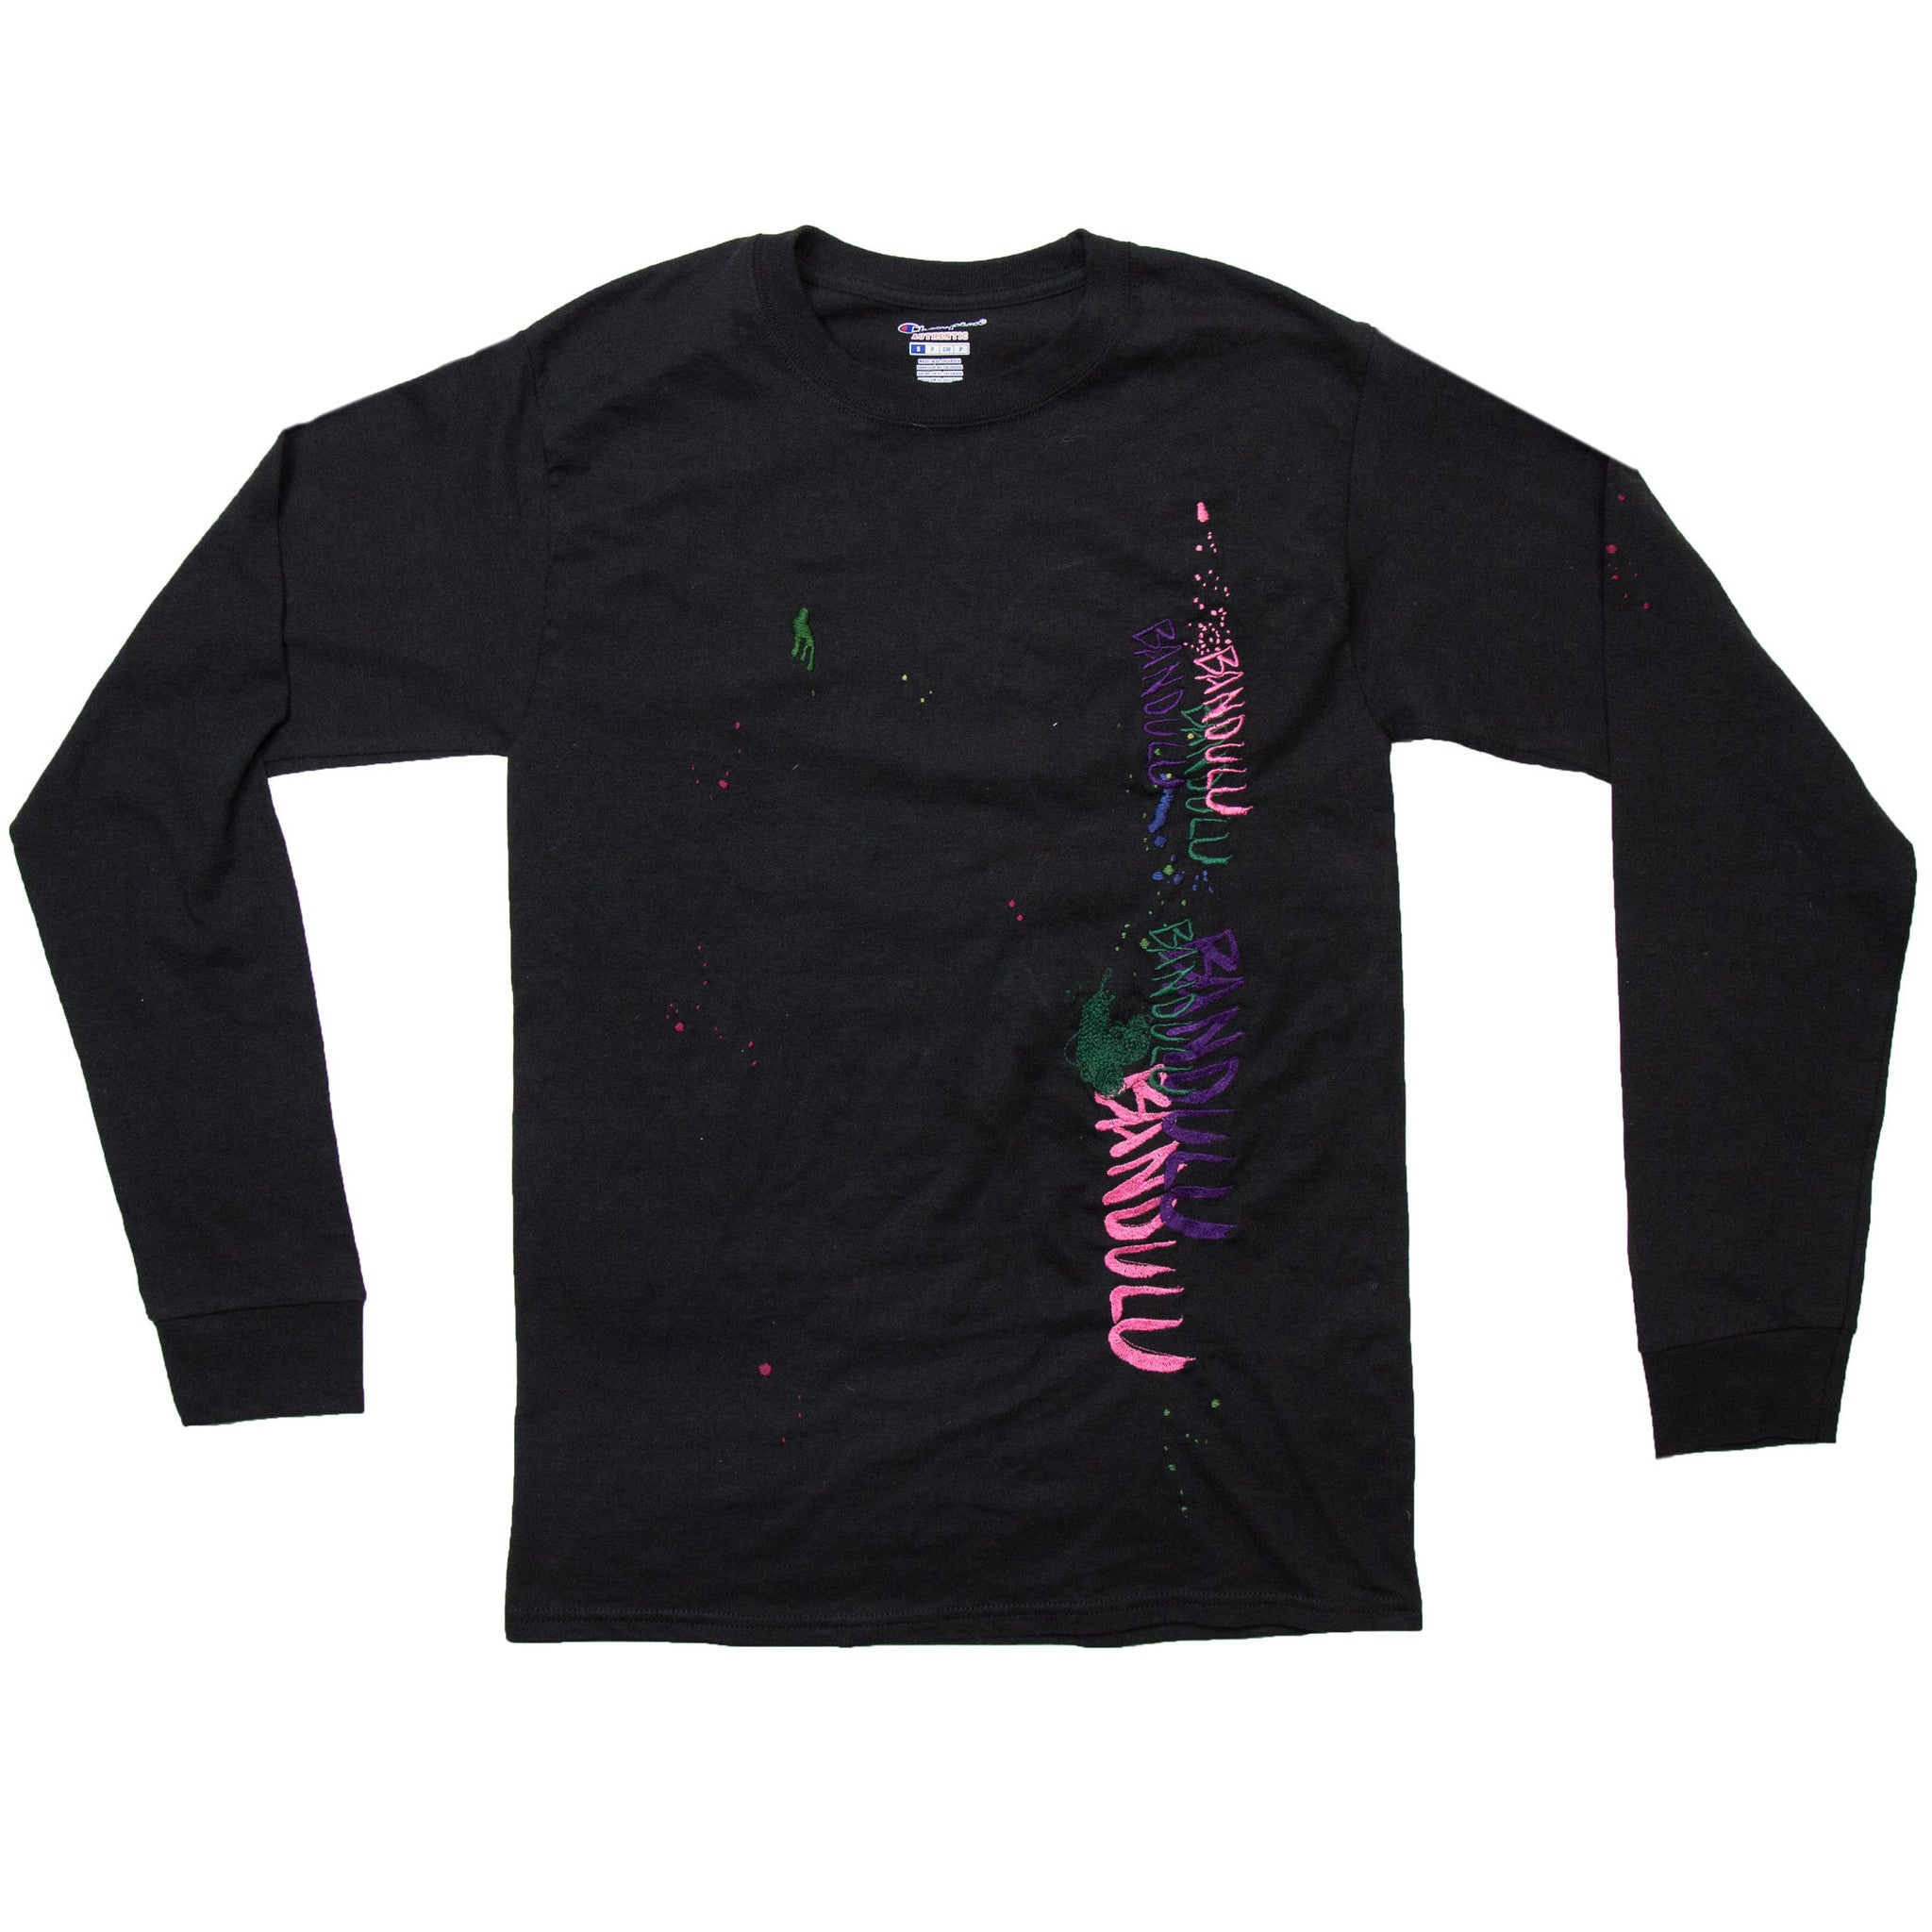 "BANDULU ""WINDOW WIPING"" LONGSLEEVE TEE"